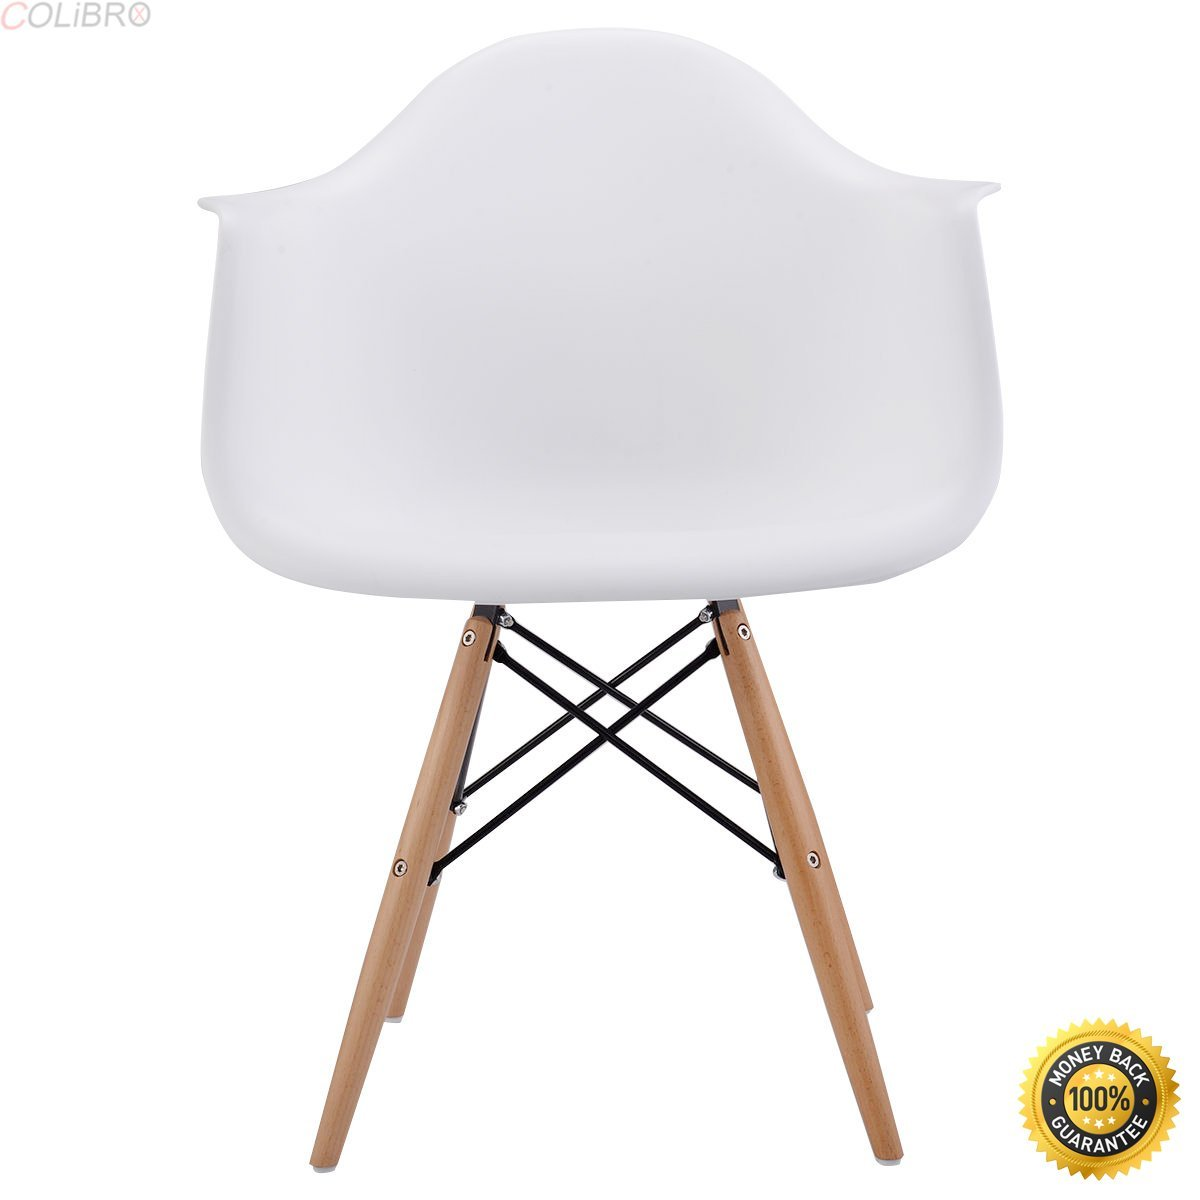 COLIBROX--1 PC Mid Century Modern Molded Plastic Dining Arm Side Chair Wood Legs White New,armchair cheap,Soft Modern Arm Chair,cheap living room chairs,living room chair,chairs for sale cheap